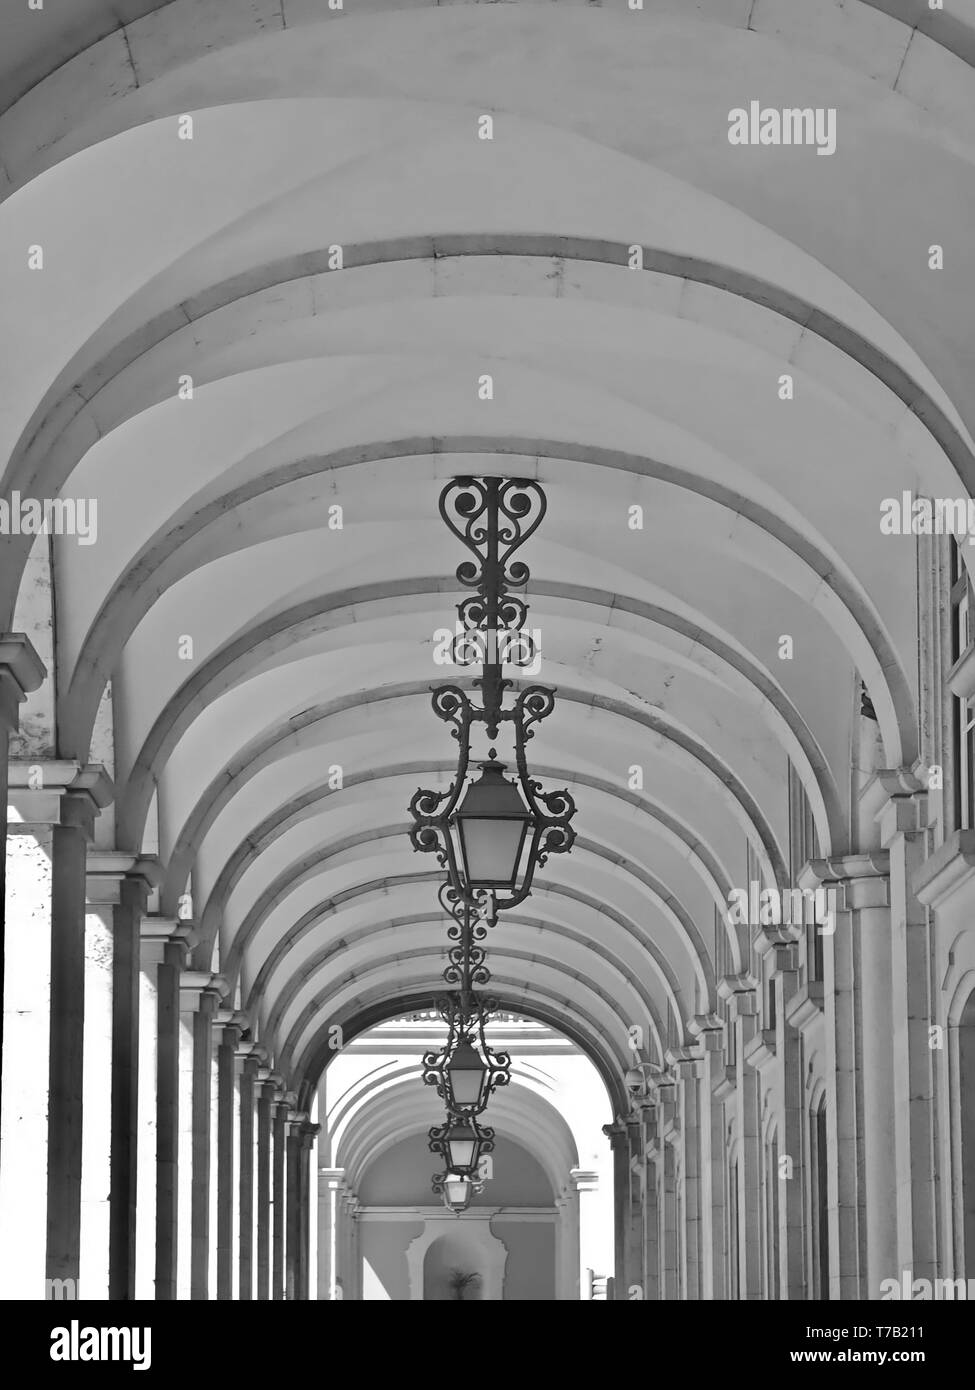 Beautiful arcades with lamps in Arco rua do Augusta in Lisbon - Stock Image